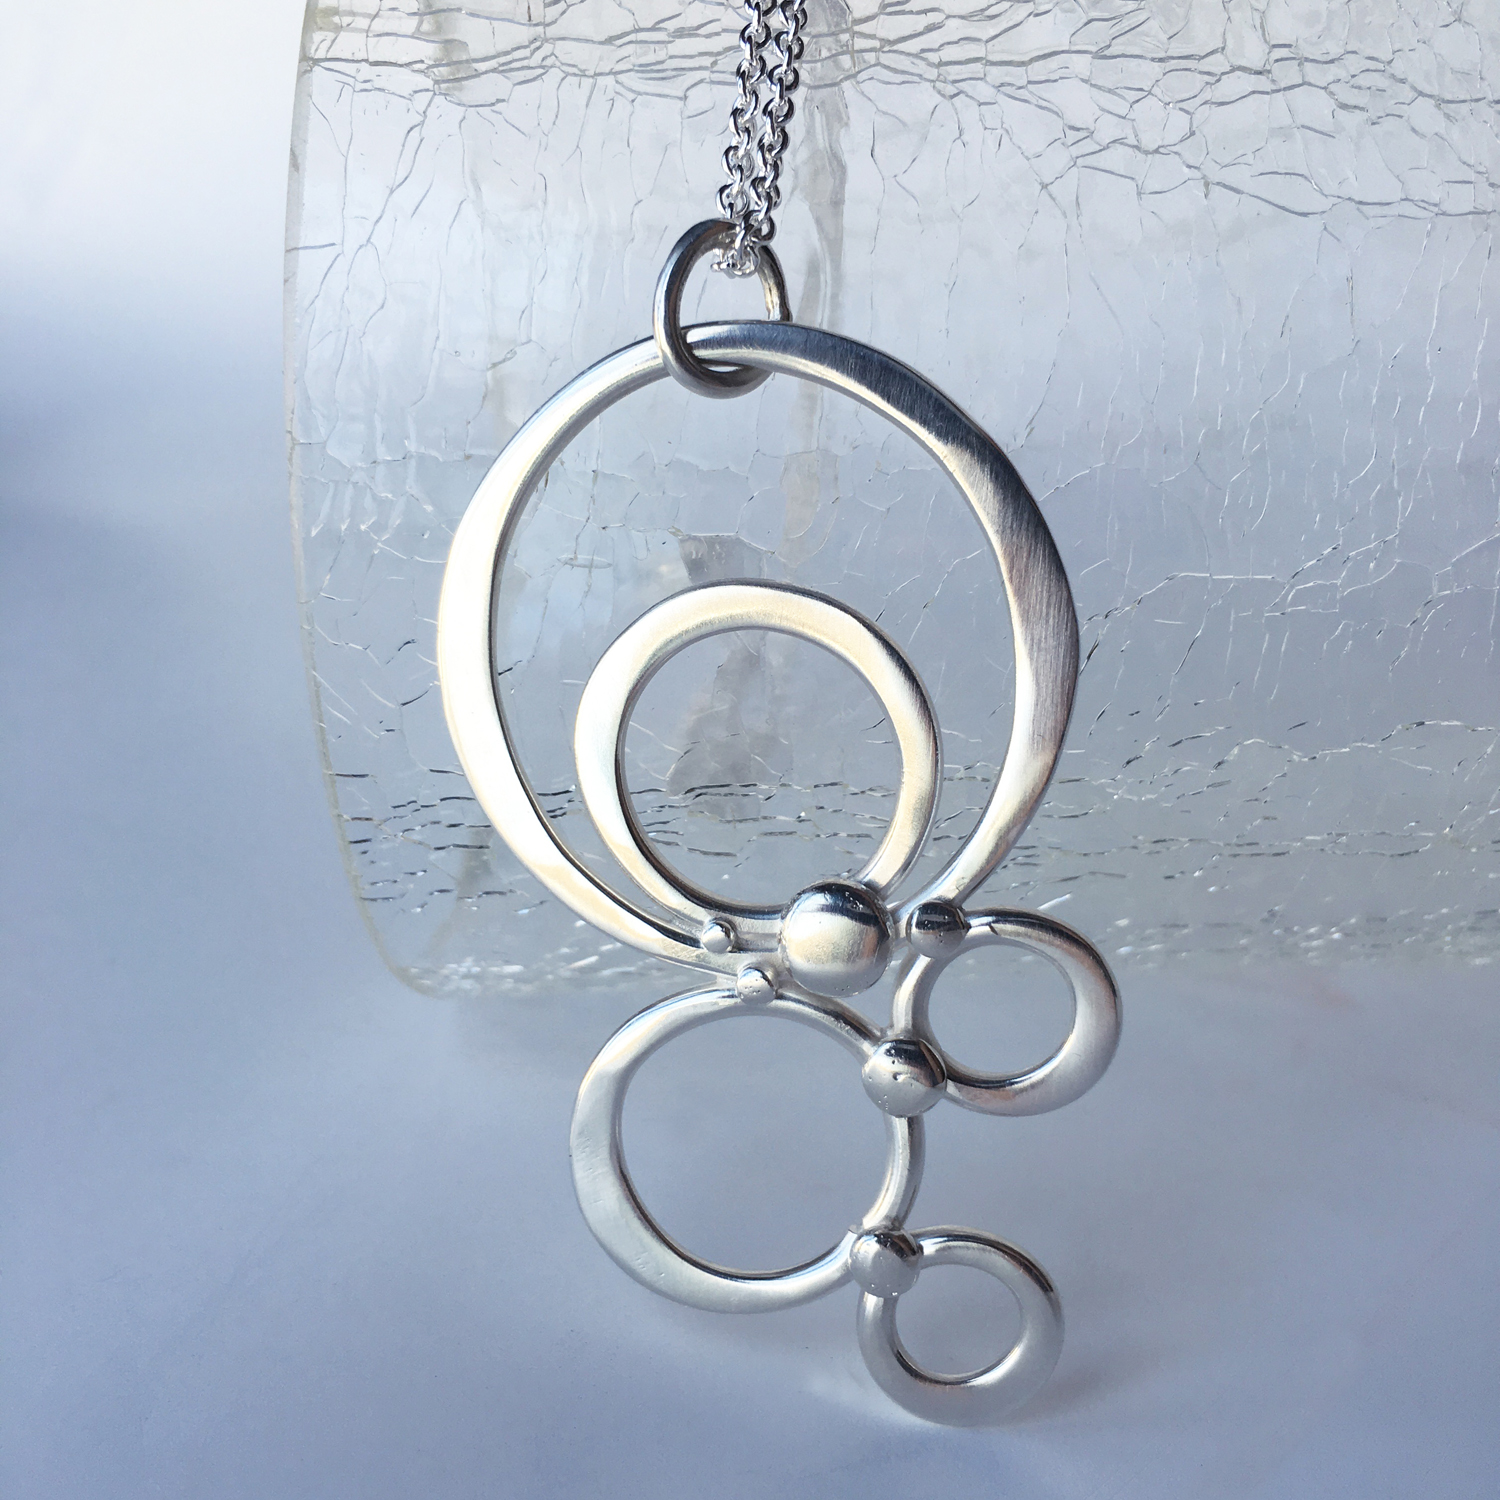 fused circle necklace_3.16a